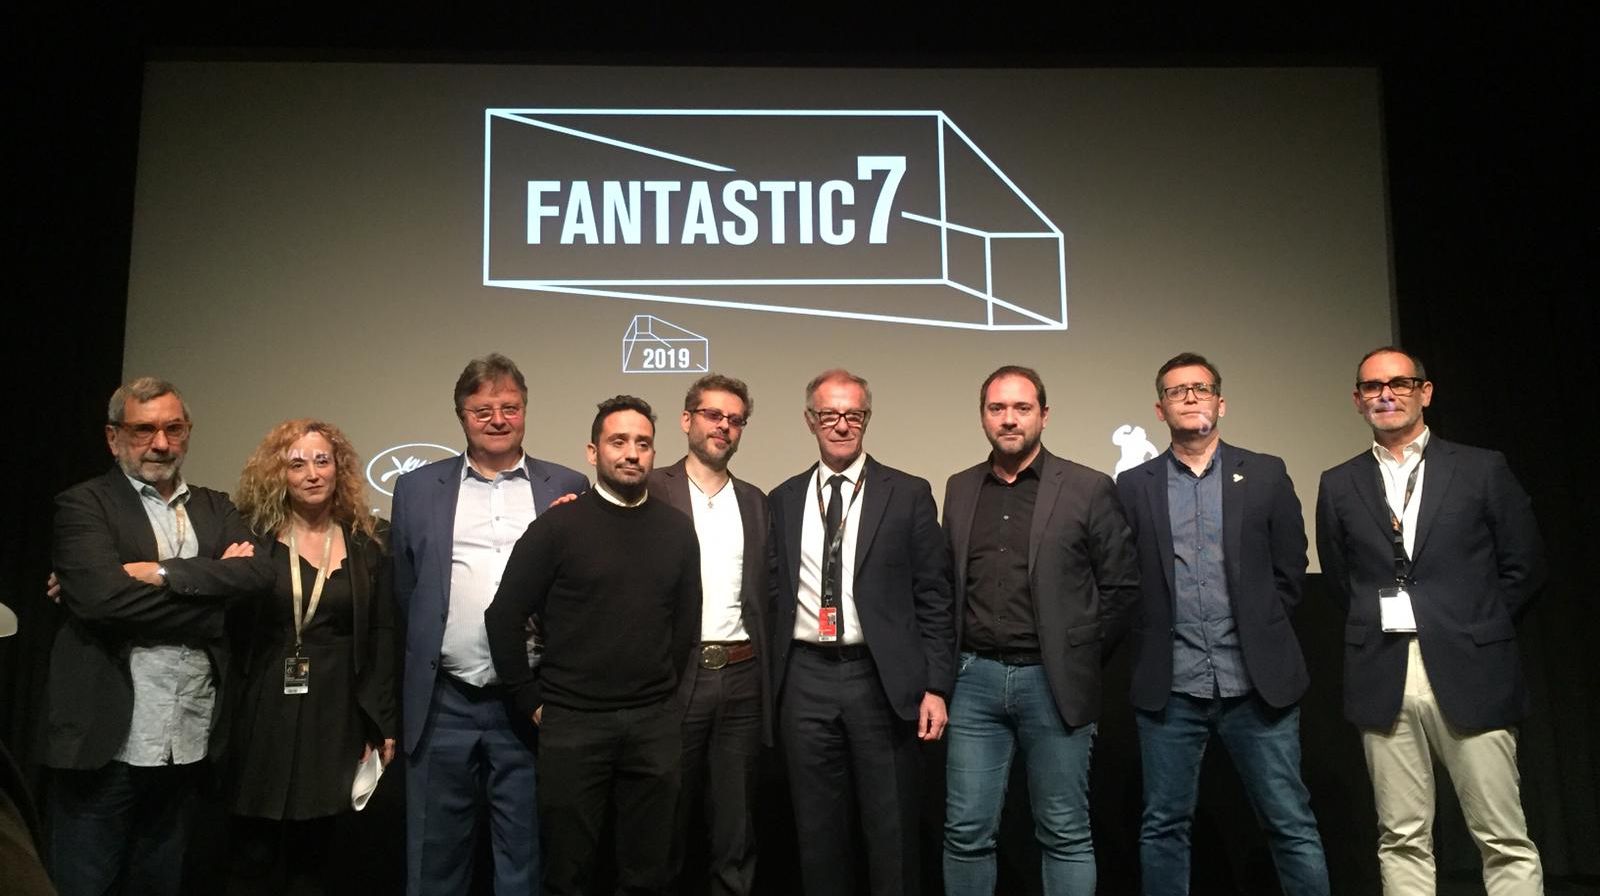 Sitges' Fantastic 7 is a huge hit at a Cannes committed to genre